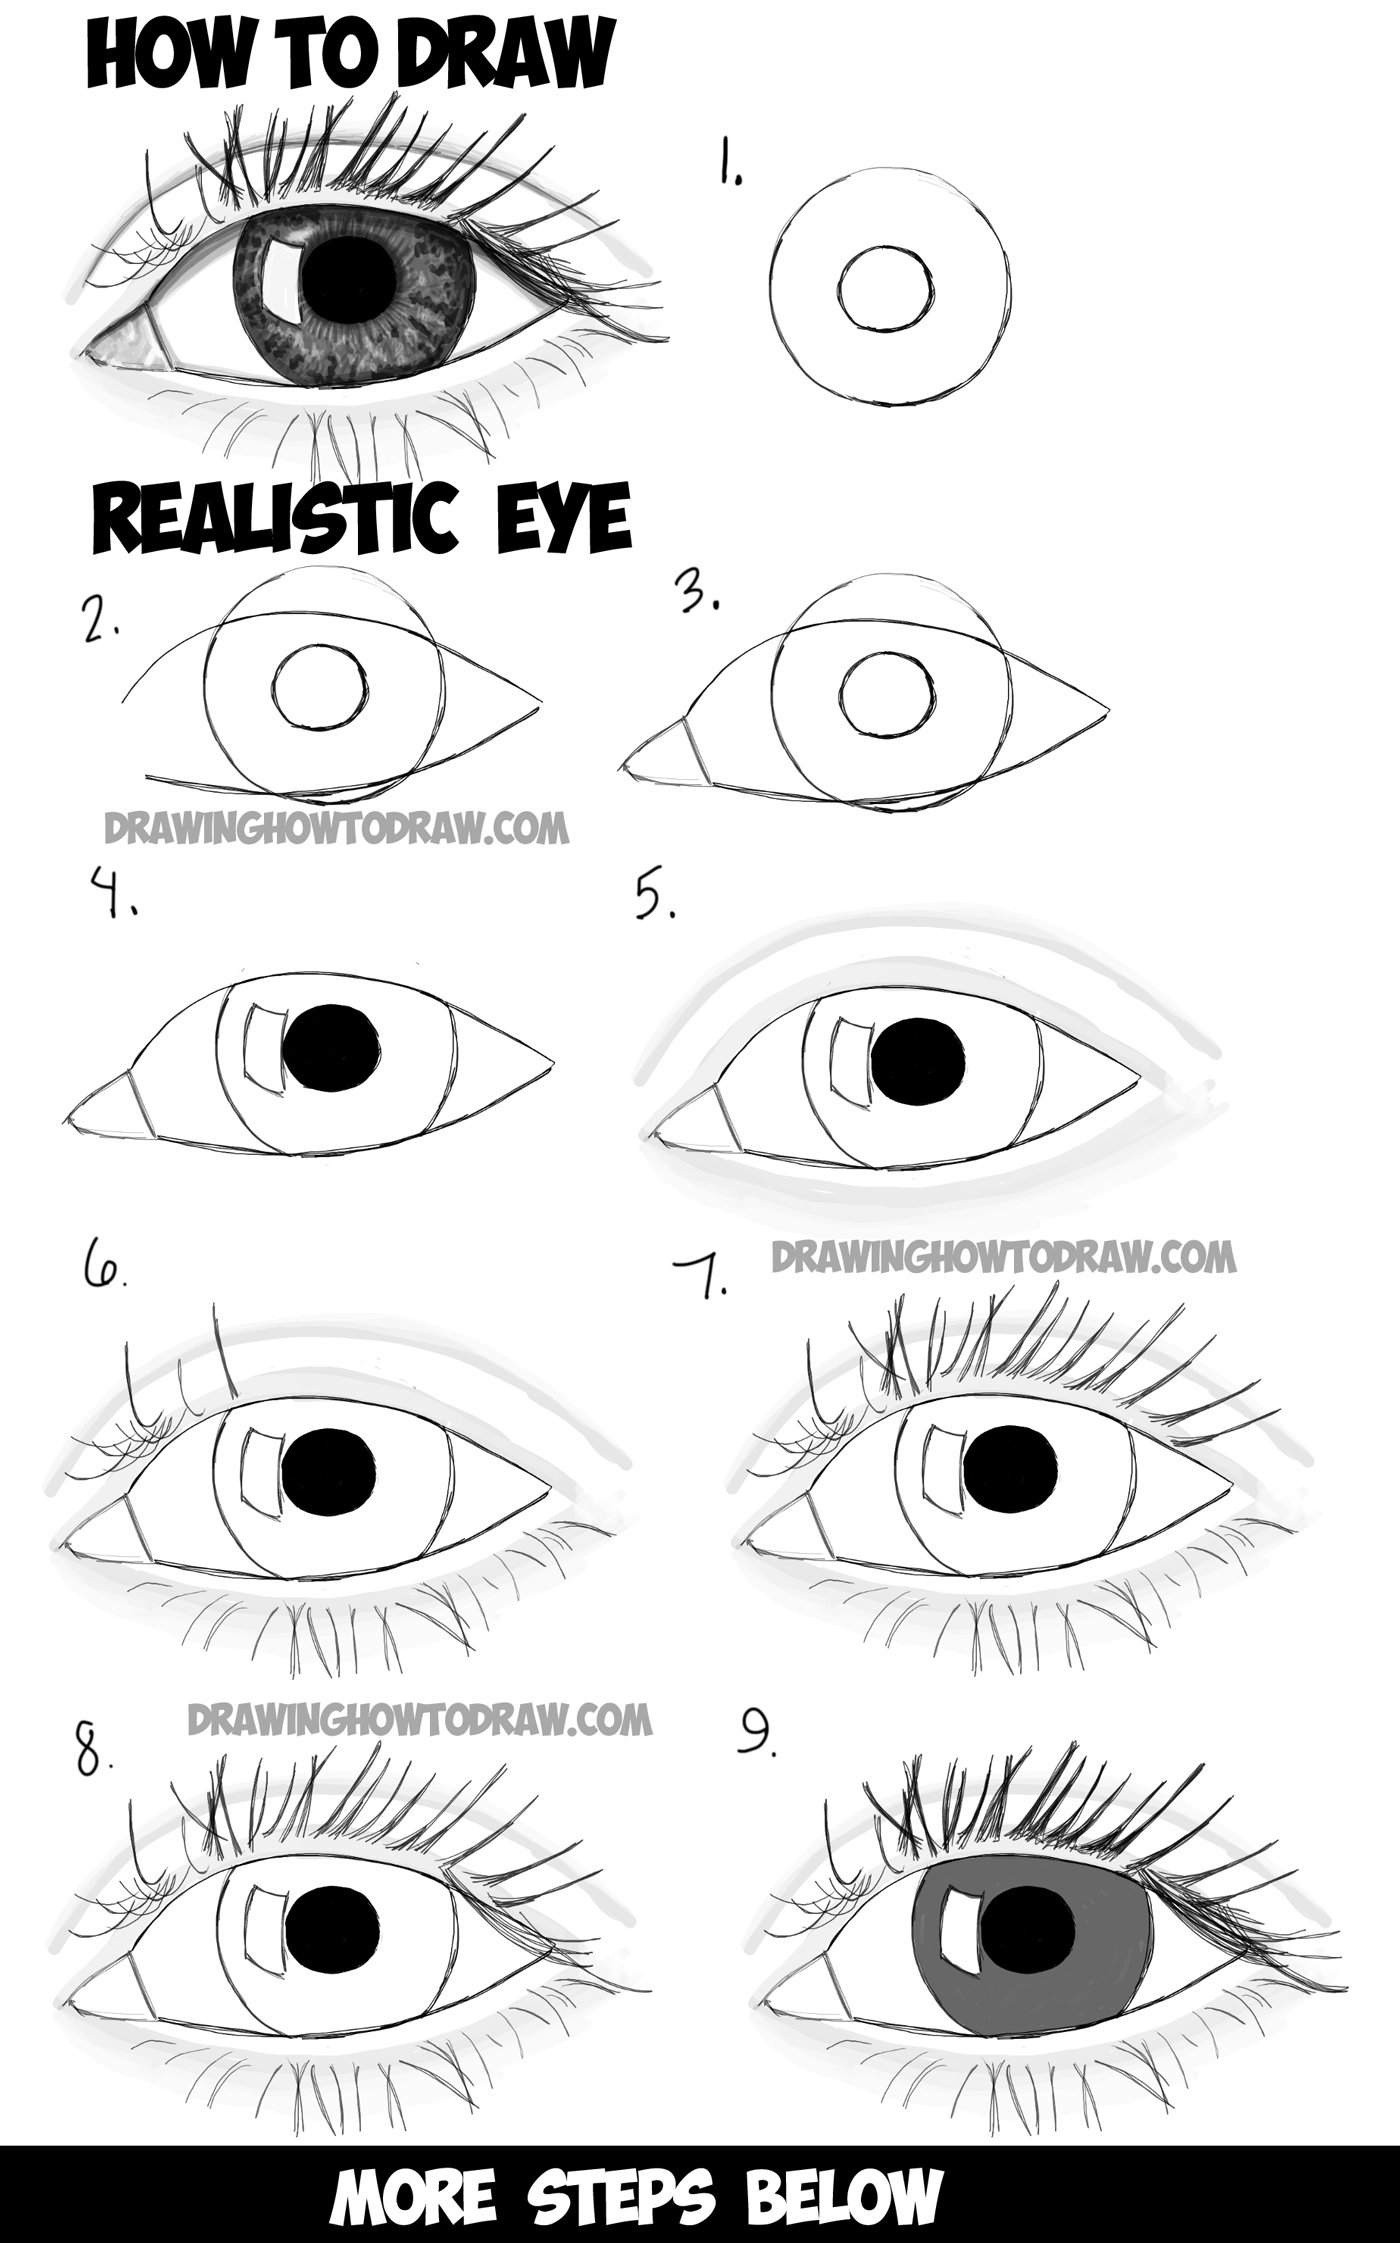 how to draw a geisha step by step how to draw realistic eyes with step by step drawing how geisha to a by step draw step